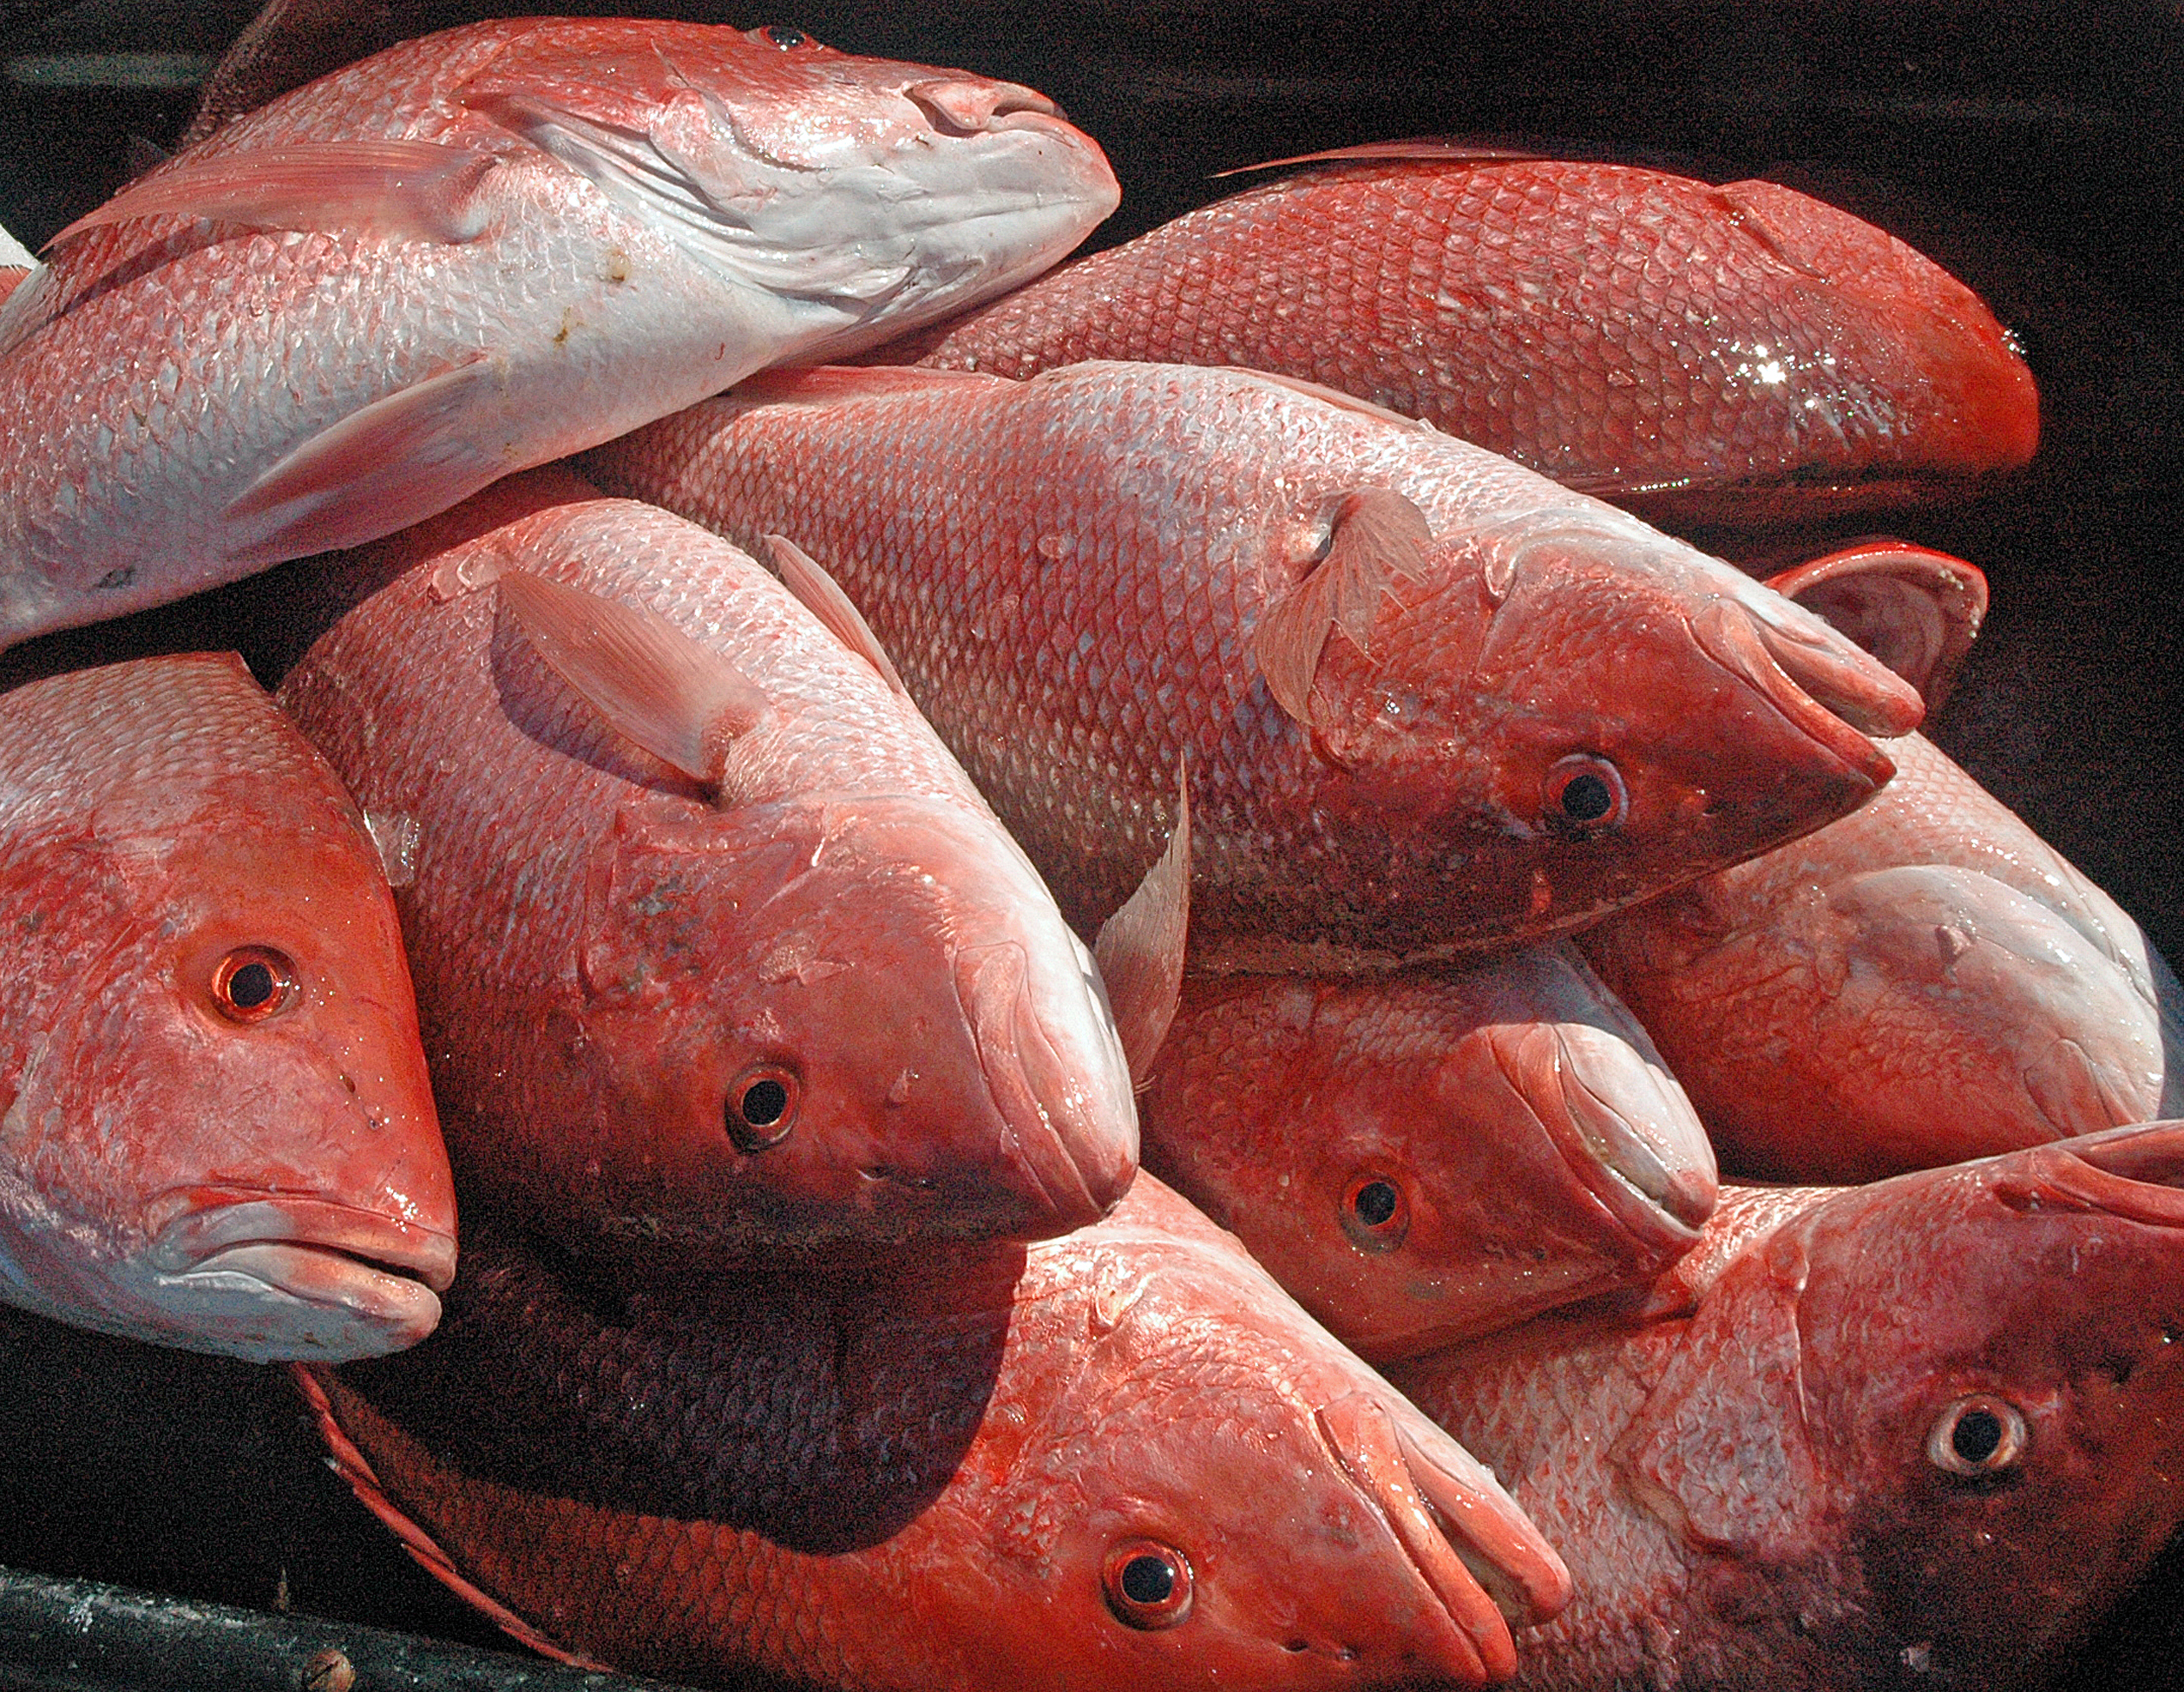 Alabama Announces Closure of Red Snapper Season for Private Anglers